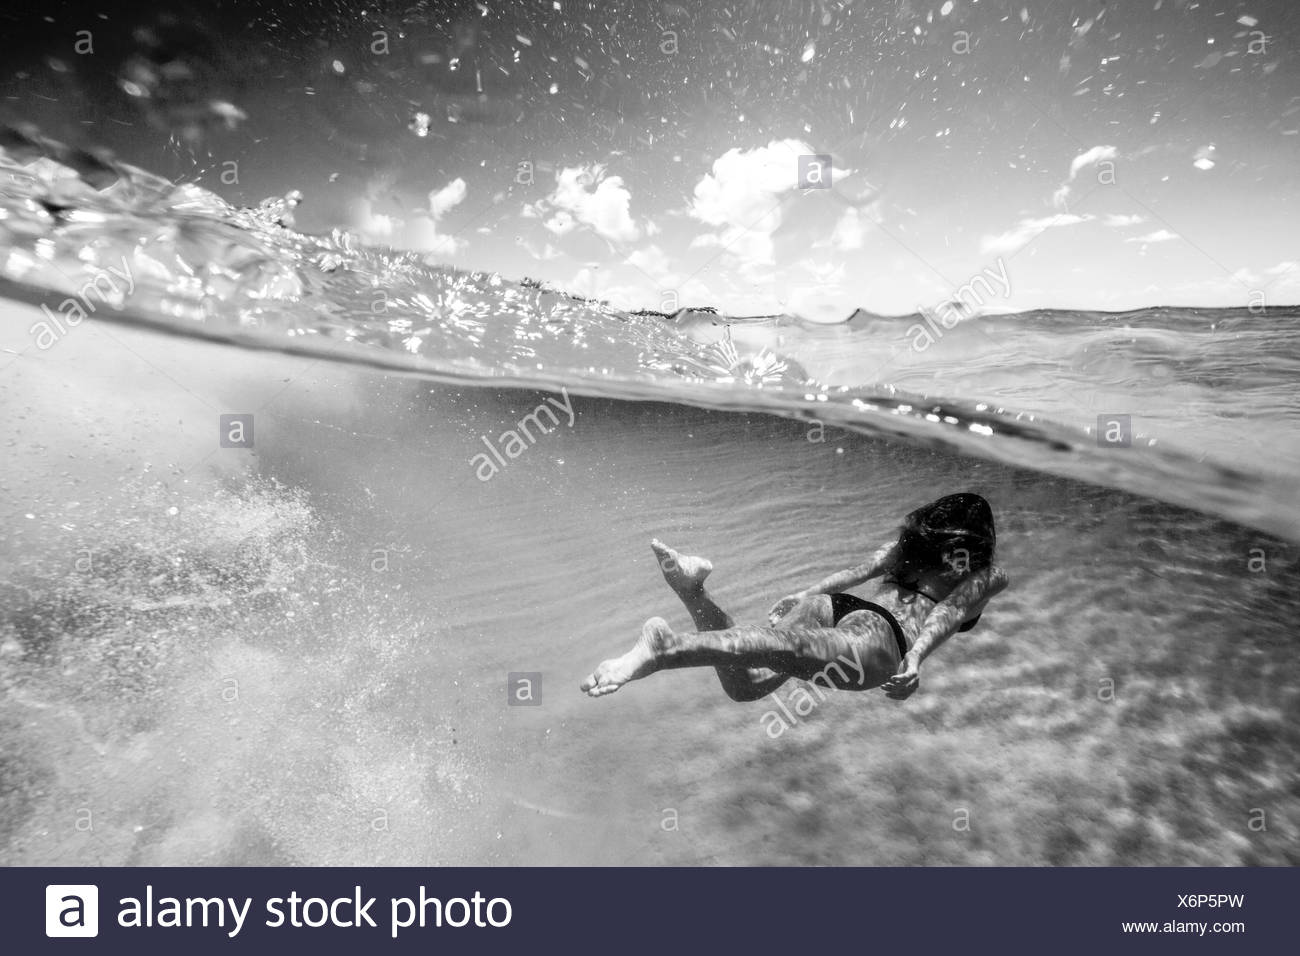 Woman swimming underwater Photo Stock